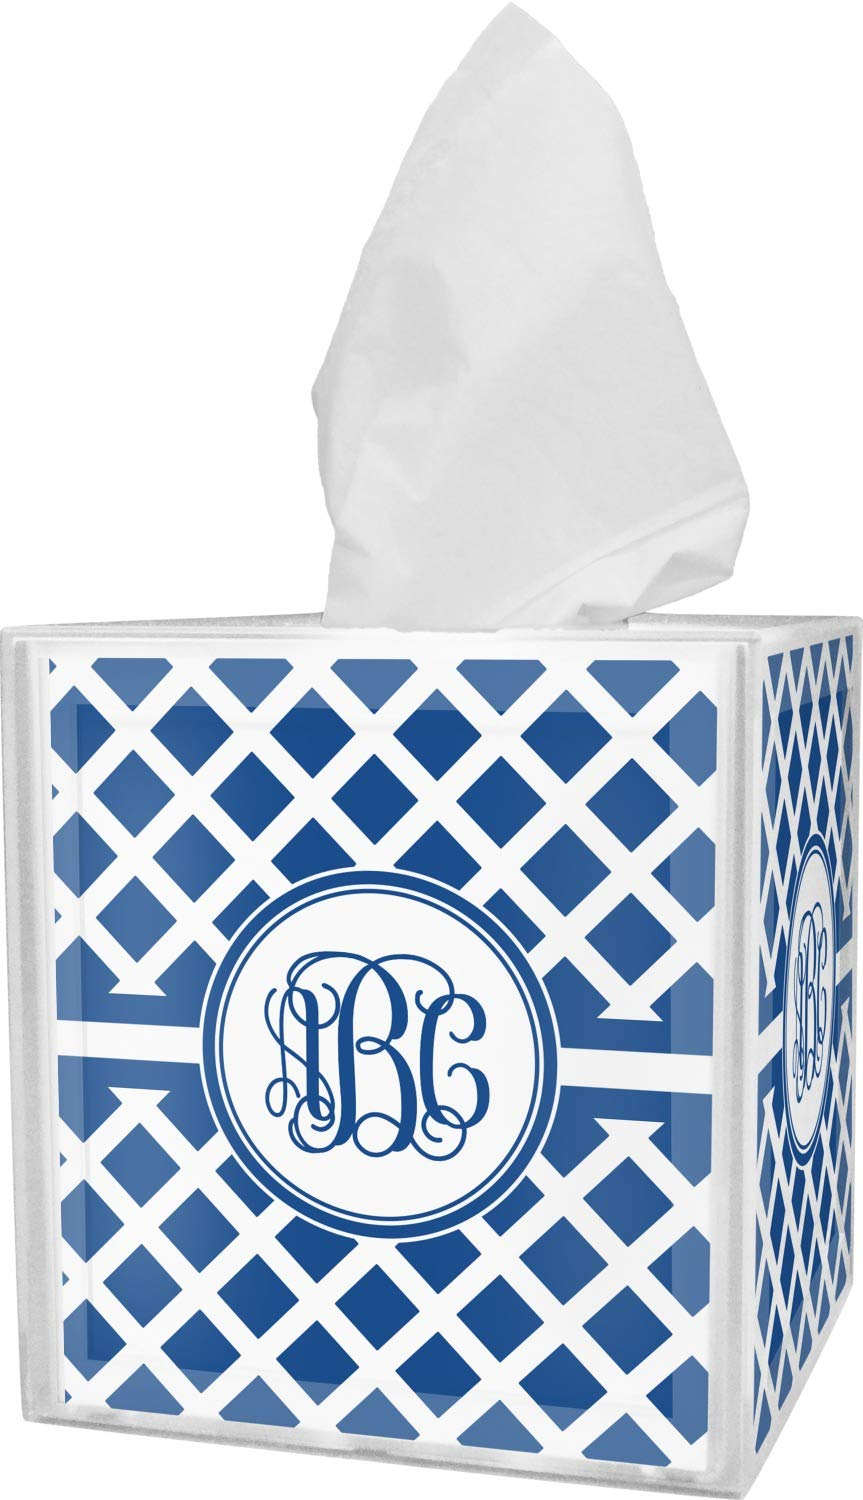 RNK Shops Diamond Tissue Box Cover (Personalized)